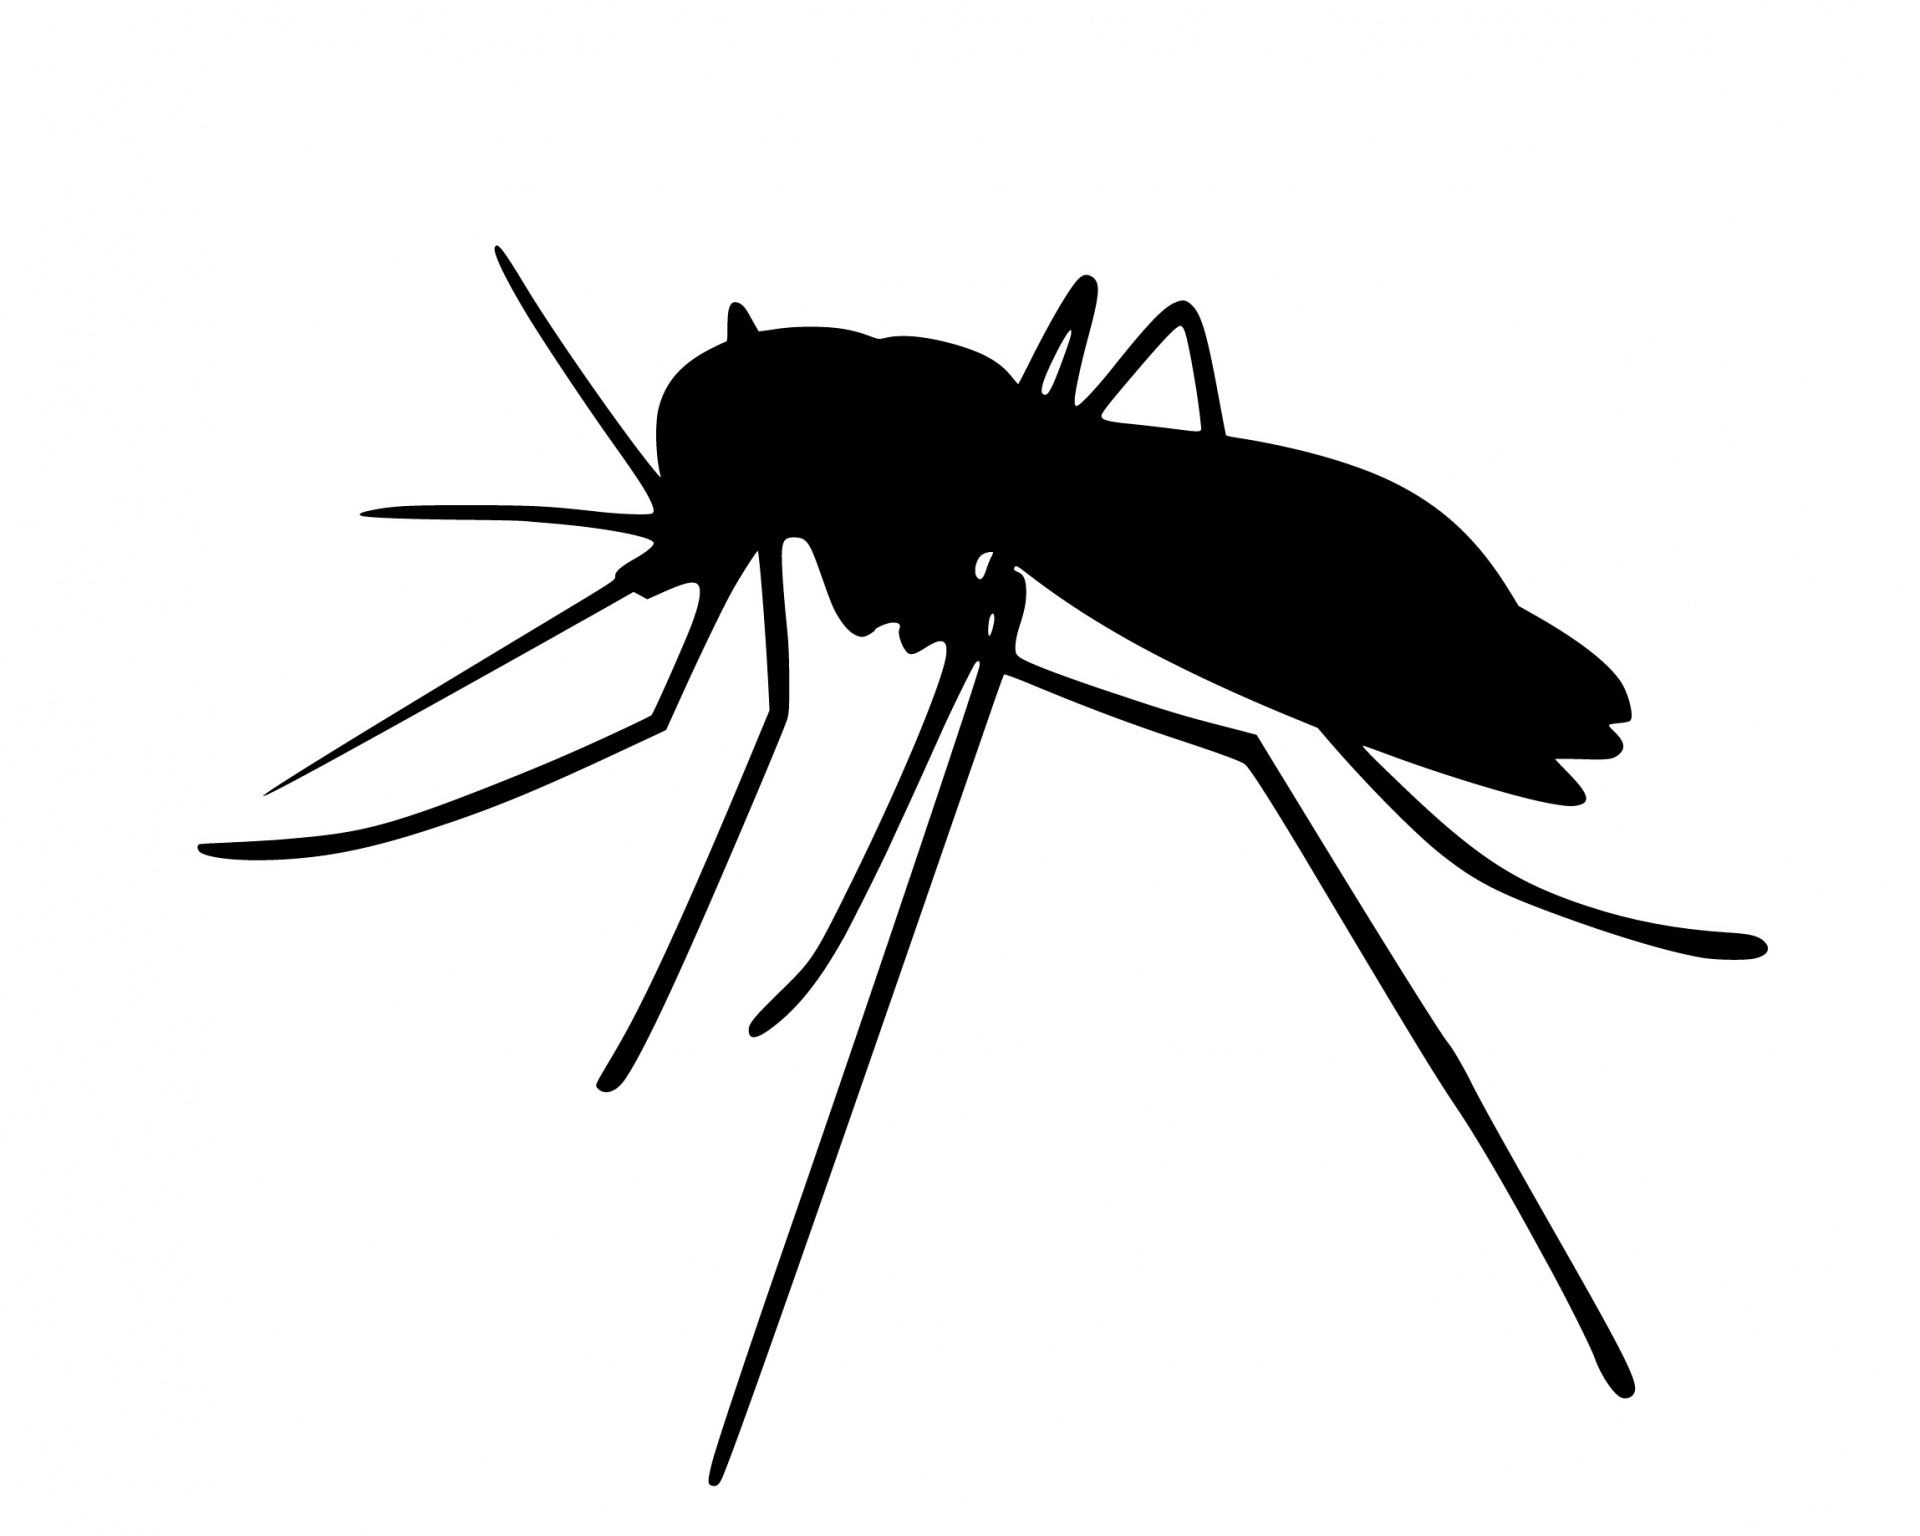 mosquito-insects-silhouette-ae